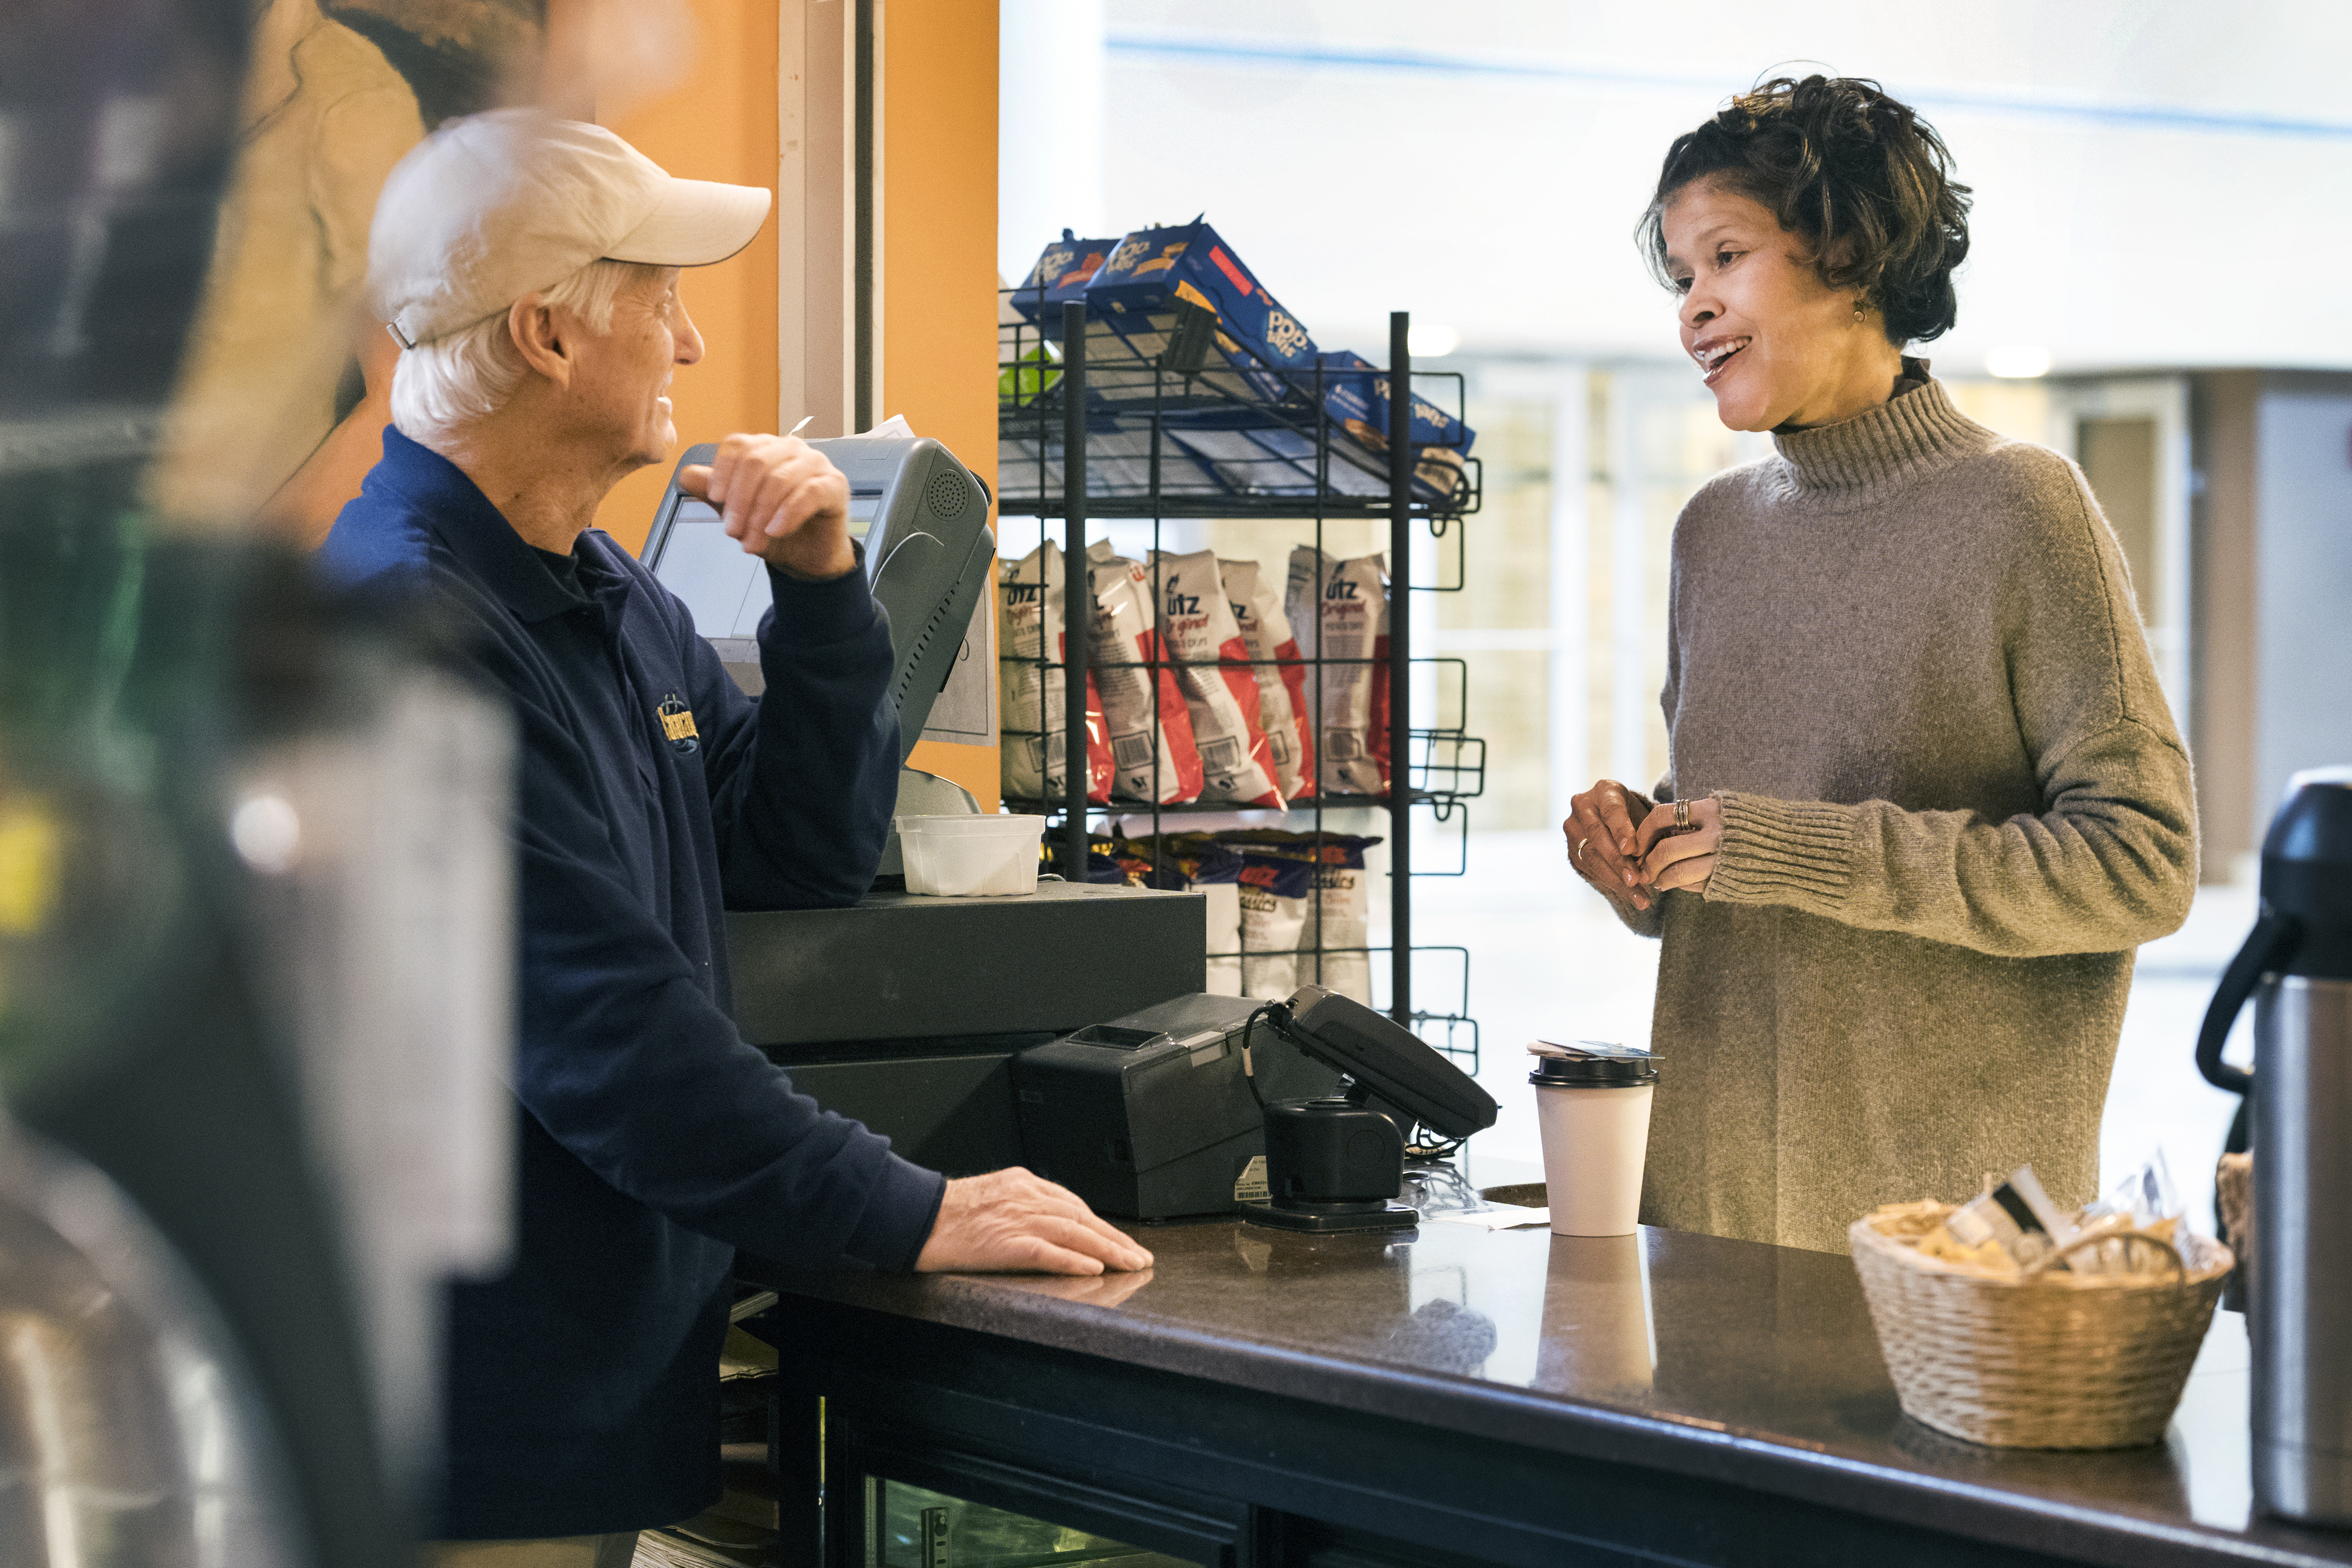 Lauri Andress (right), an assistant professor in the WVU School of Public Health, studies rural residents' access to healthy food. Shown here during a visit to Cavanaugh's coffee shop, at the Robert C. Byrd Health Sciences Center, Andress is interested in infrastructure investments, economic development and employment opportunities that can improve food access for the rural elderly.